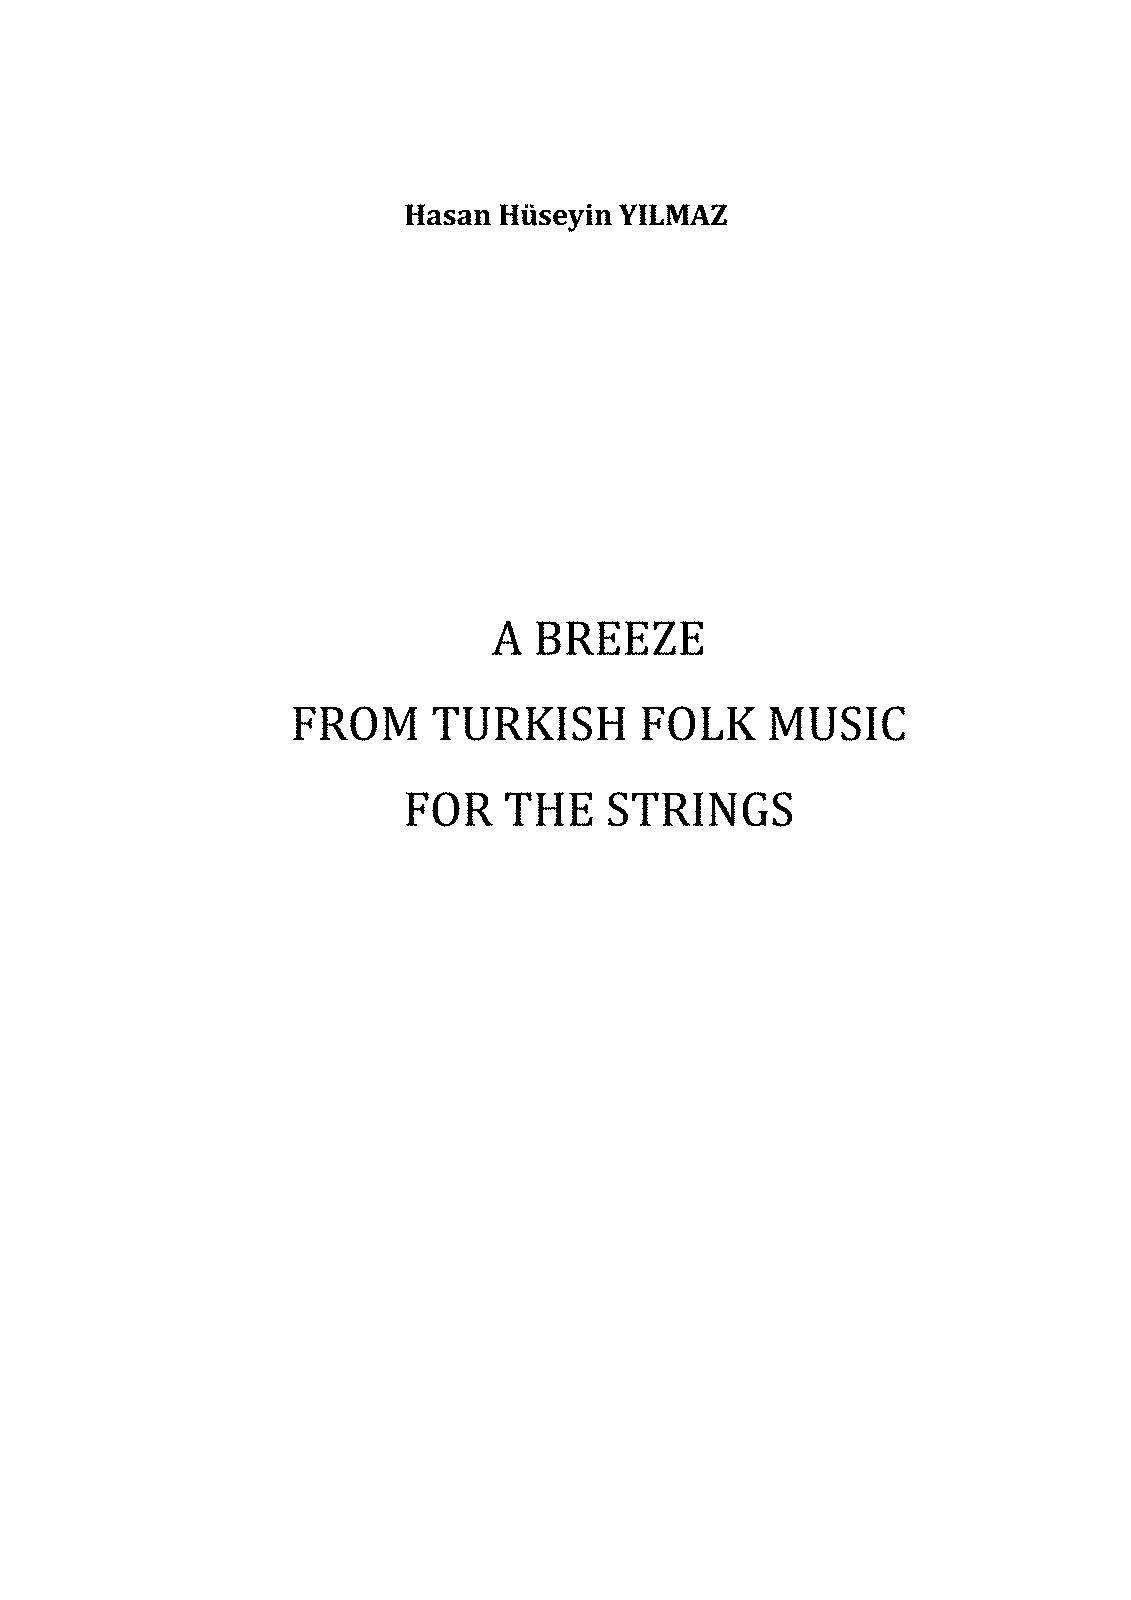 PMLP538846-A Breeze from Turkish Folk Music for the Sitrings. Composed by Hasan Hüseyin YILMAZ.pdf